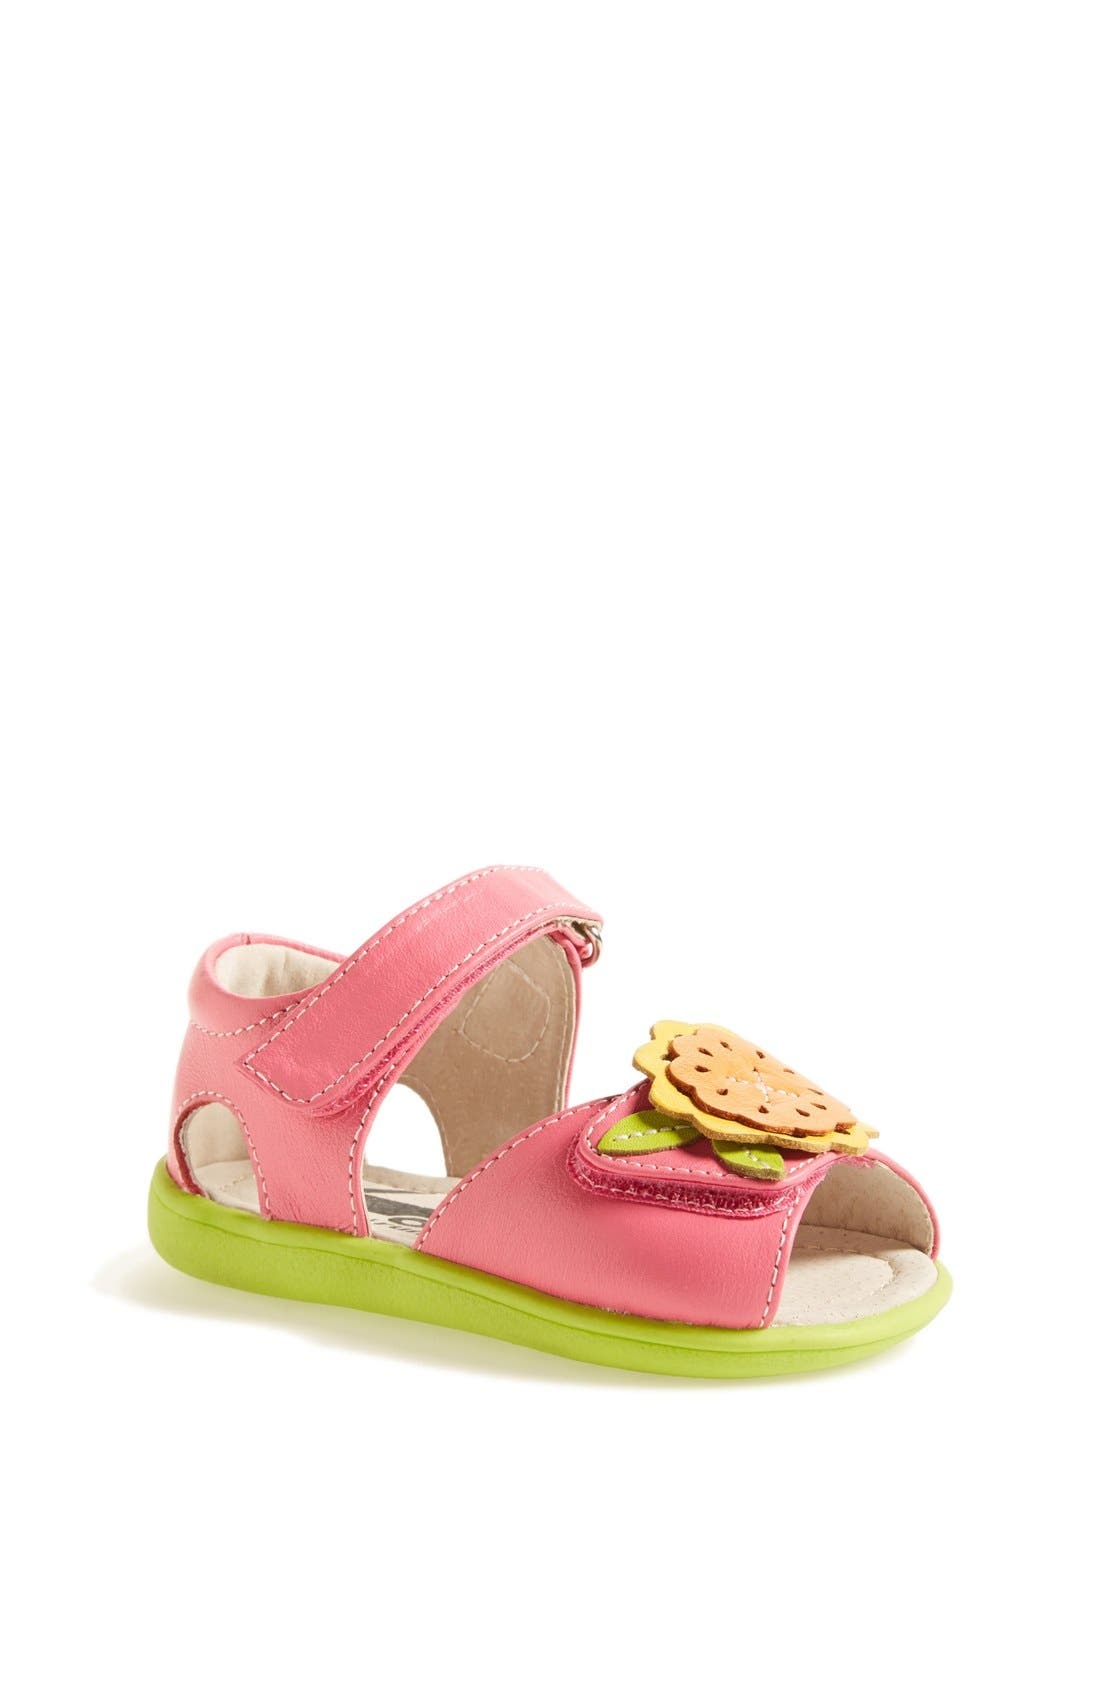 Alternate Image 1 Selected - See Kai Run 'Eliza' Sandal (Baby, Walker & Toddler)